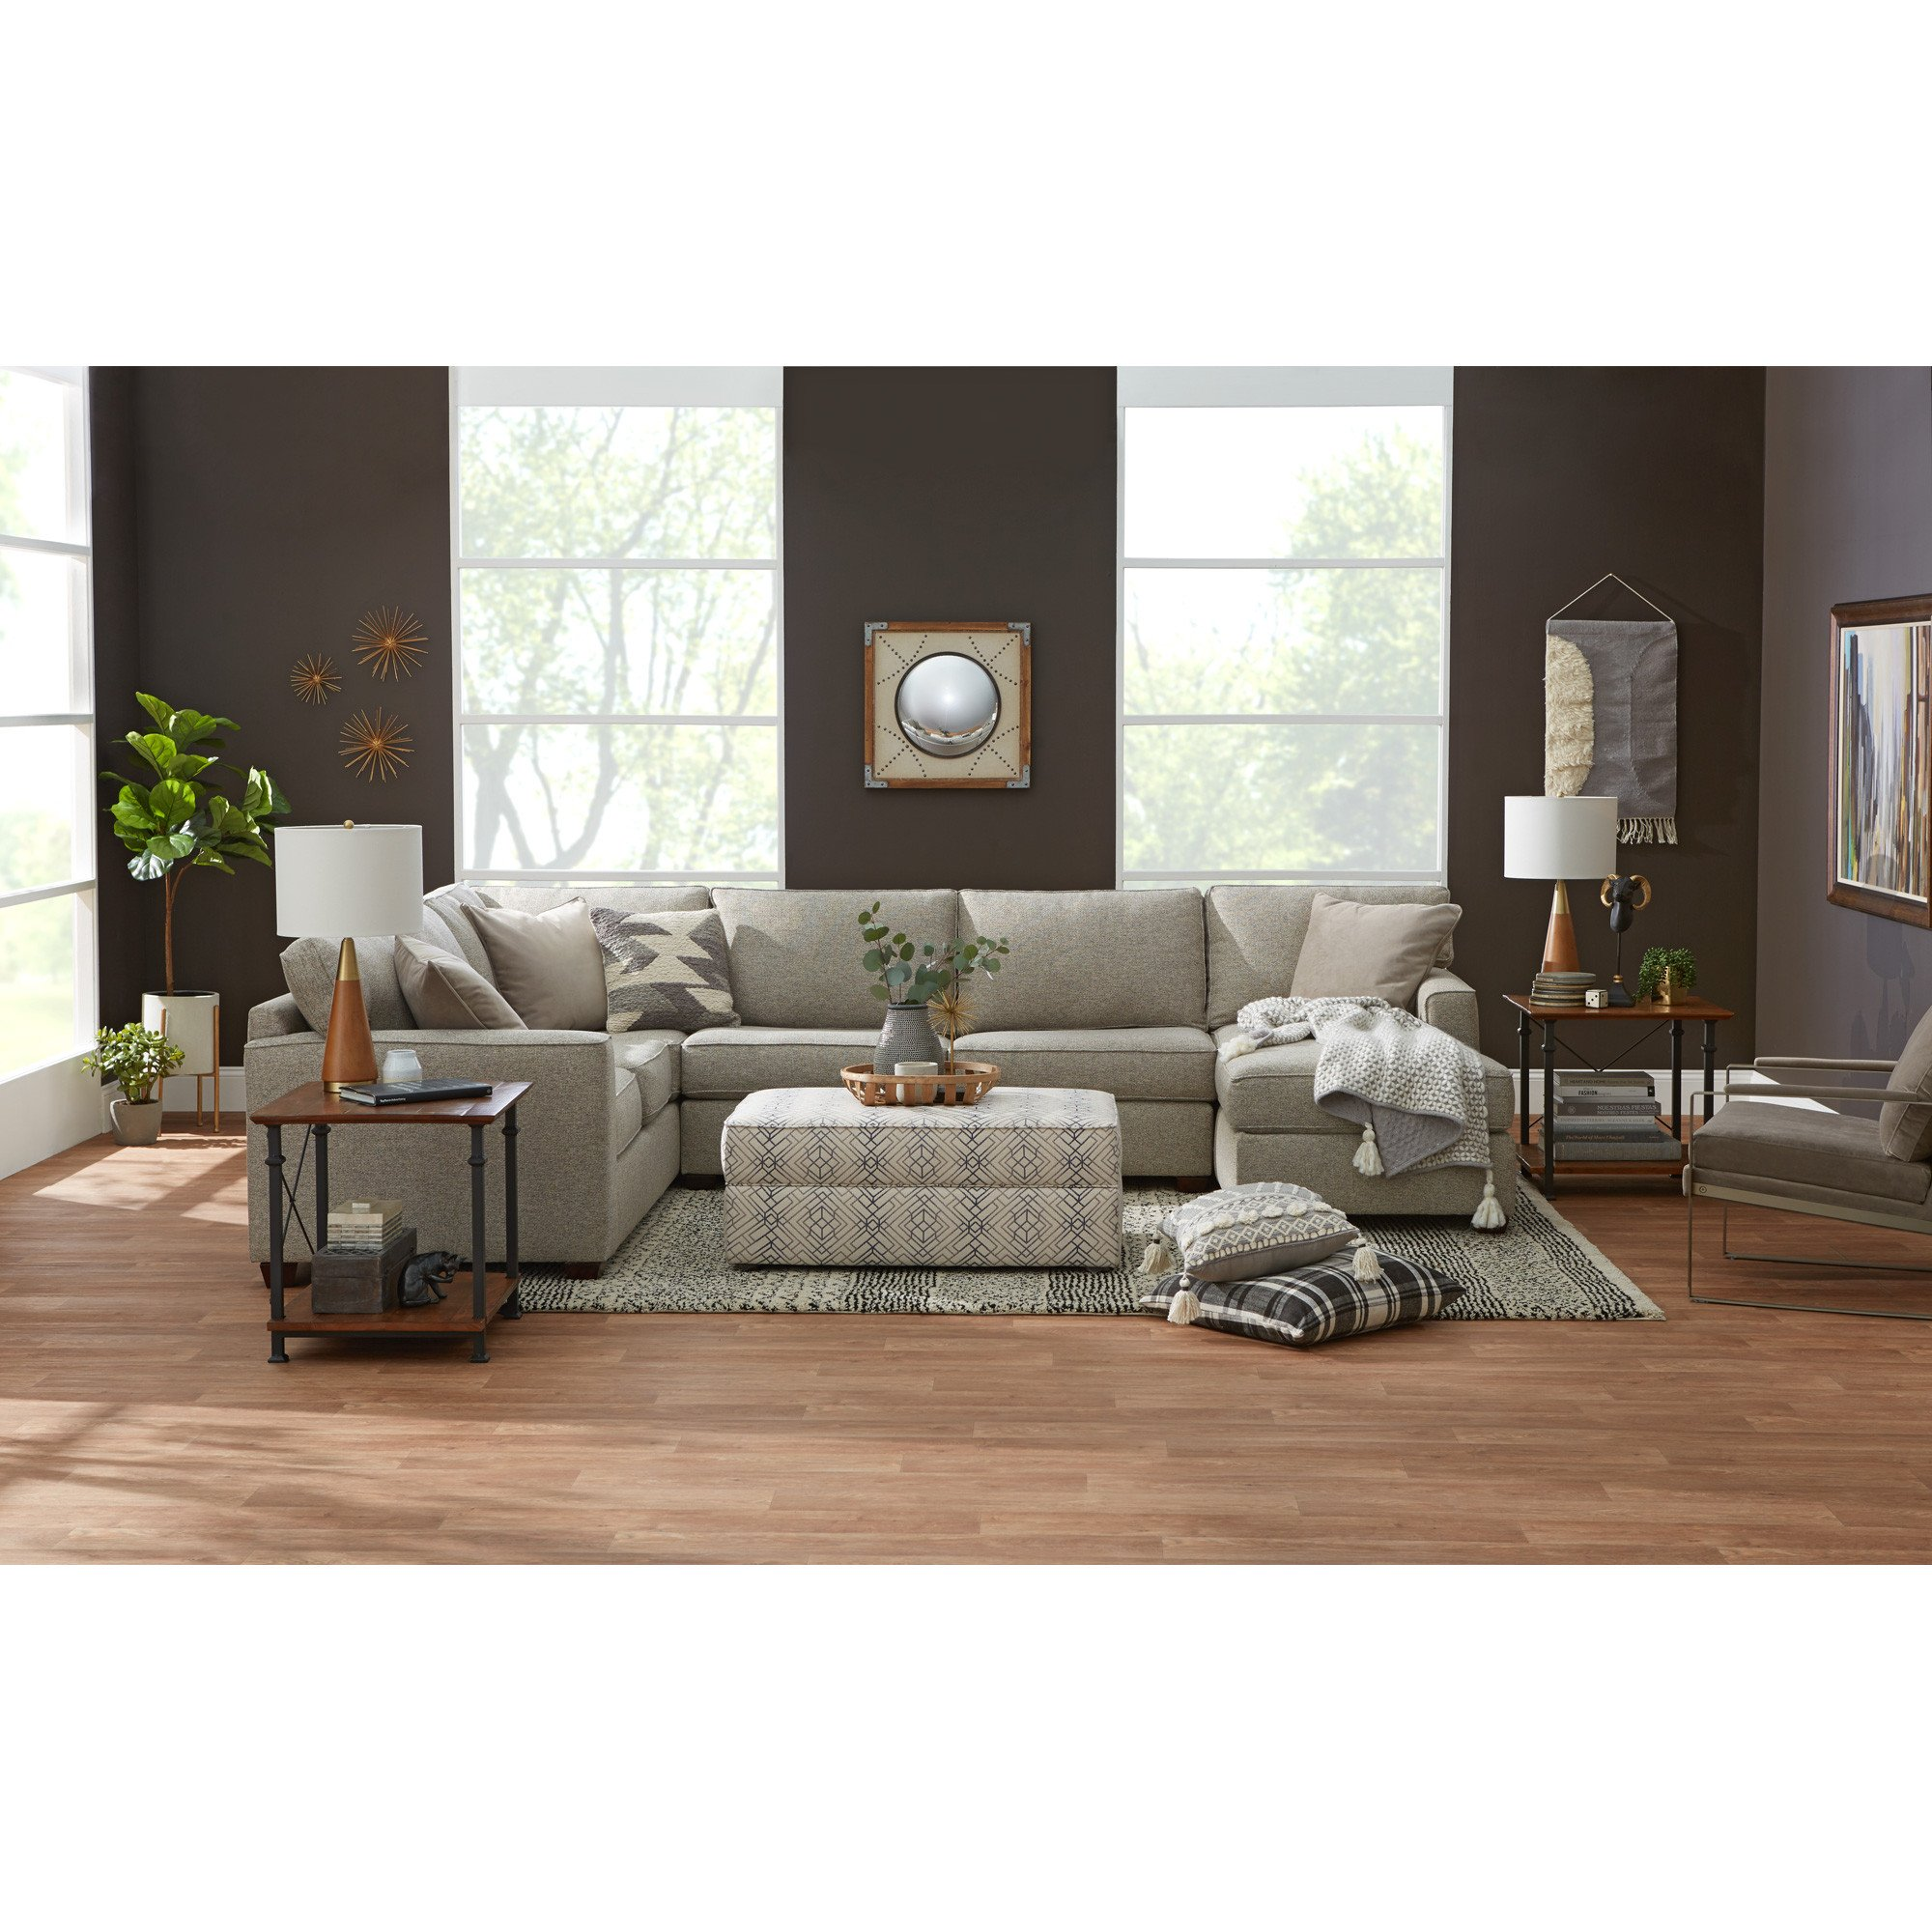 Gray and Brown Bedroom Unique Rise 3 Piece Right Sectional Living Rooms